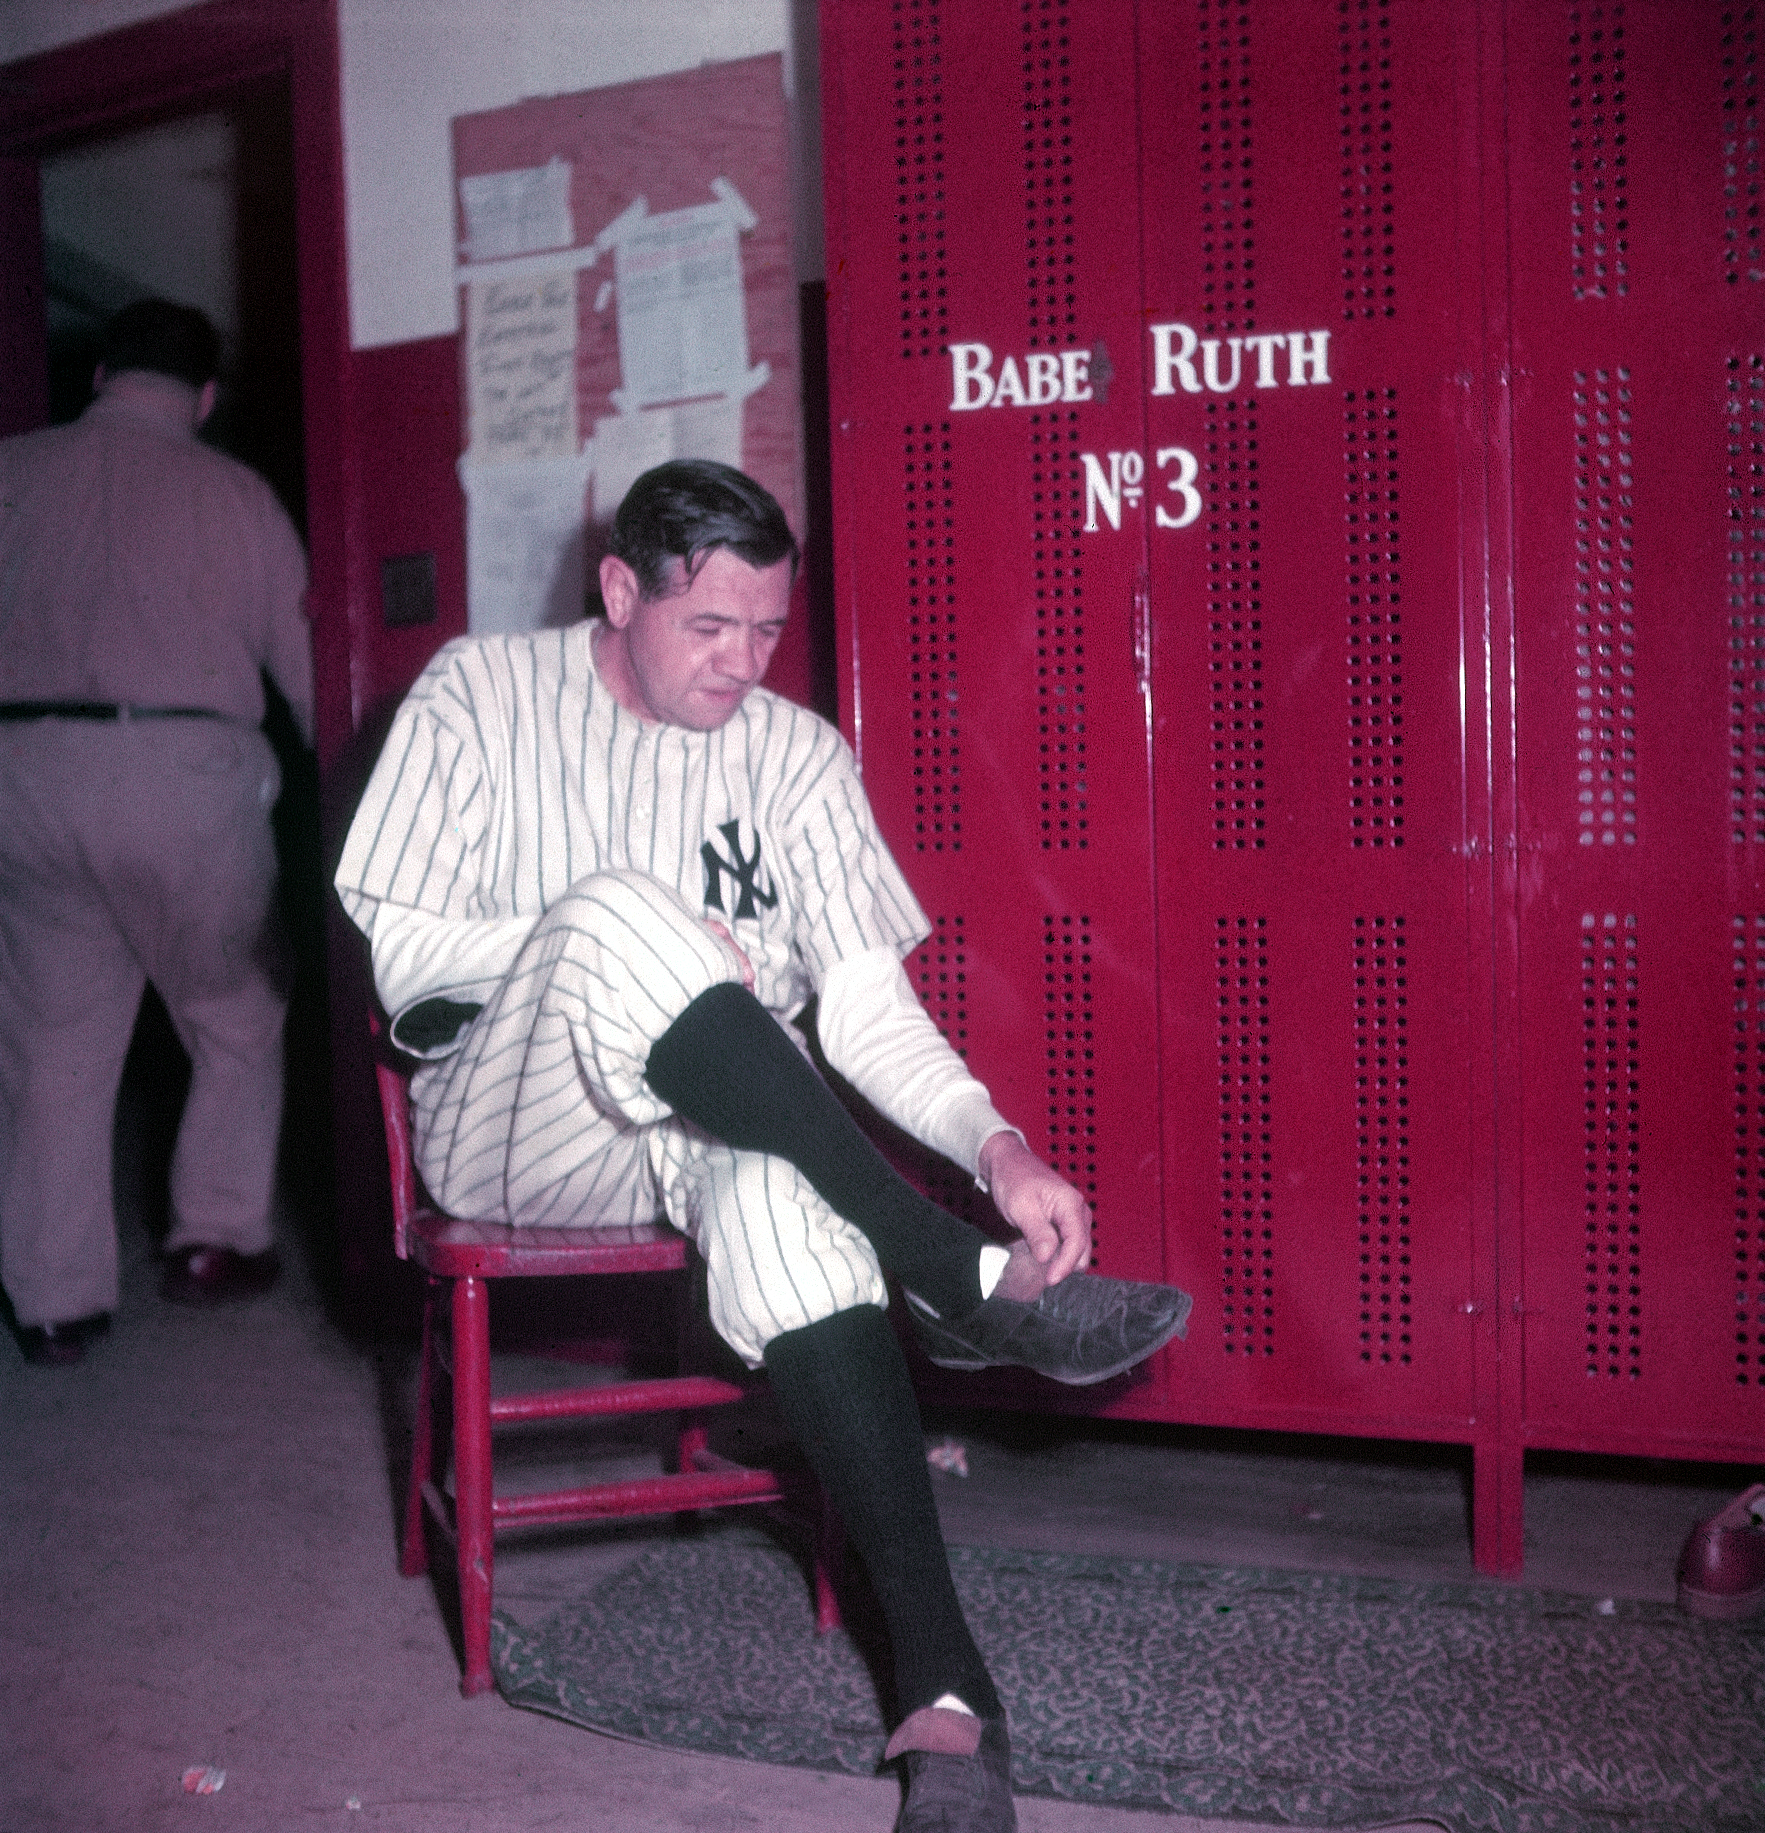 Not published in LIFE. Babe Ruth in the locker room at Yankee Stadium, June 13, 1948, the day his number was retired.